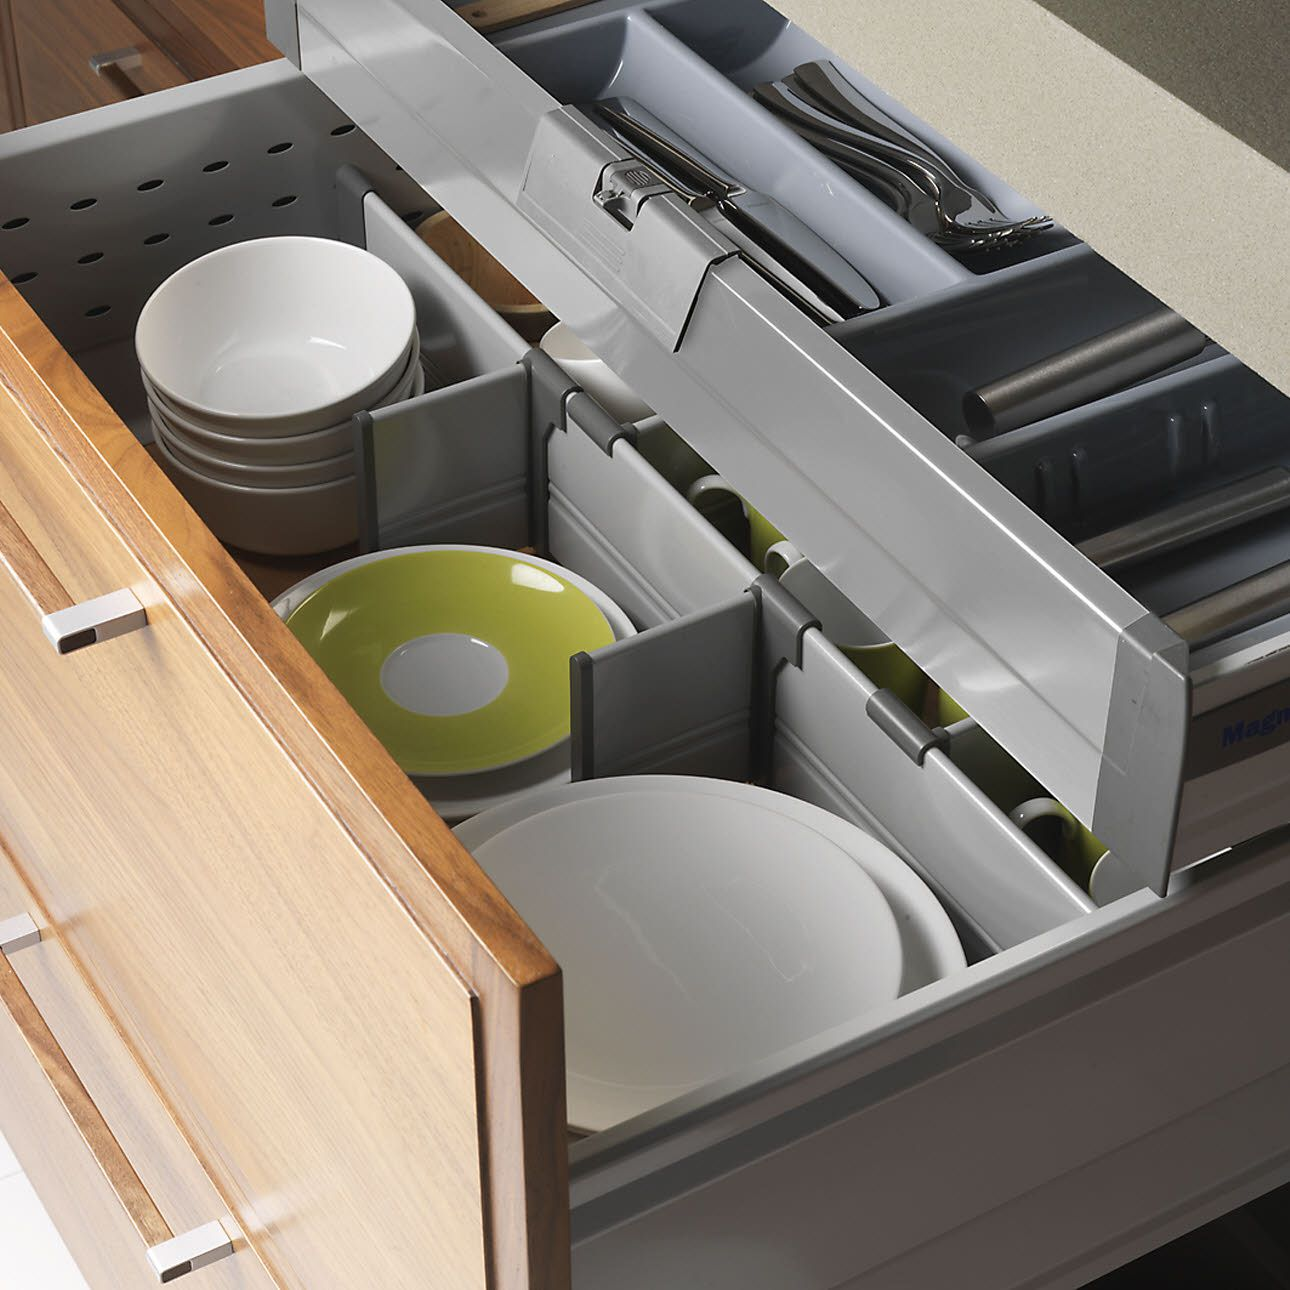 This Shallow Internal Drawer Unit Is A Neat Way To Maximize Storage Thanks The Pan